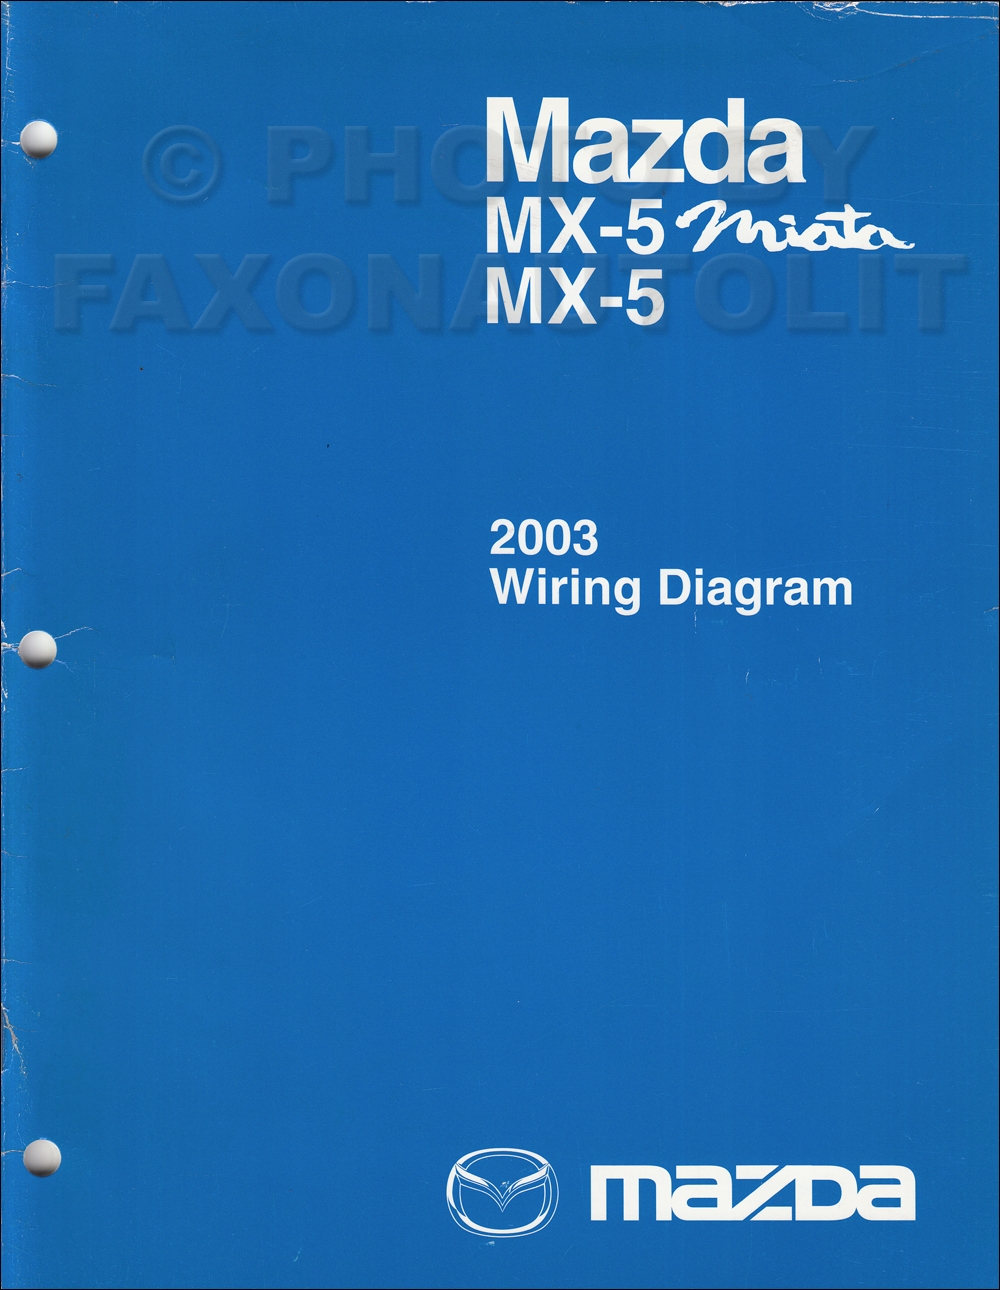 2003 Mazda MX-5 Miata MX-5 Wiring Diagram Manual Original